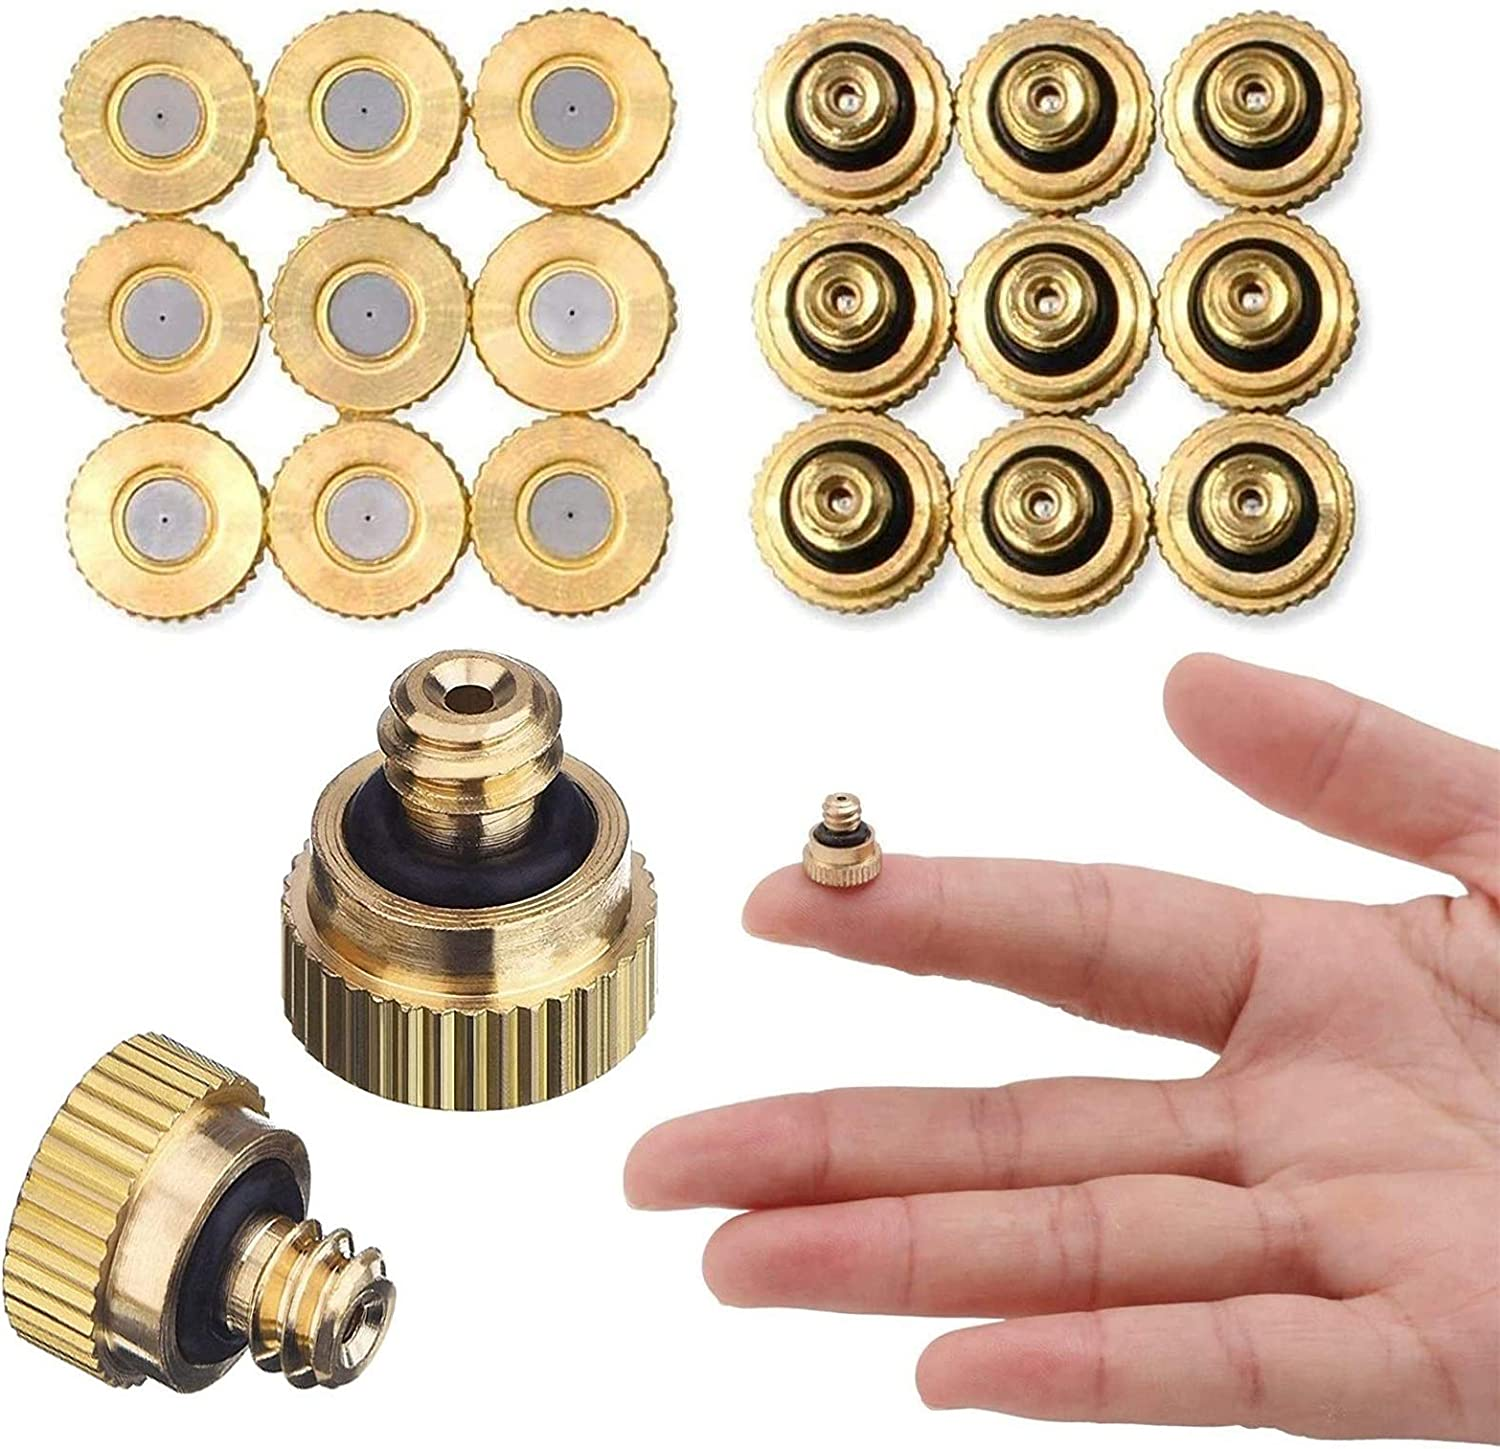 JFSXXZXWA Brass Misting Nozzles Kit Low Pressure Fogging Spray Head 10/24 for Cooling System Mister Nozzles Fog Nozzles for Patio Misting System Outdoor Cooling System Garden Water Mister (18Pcs)